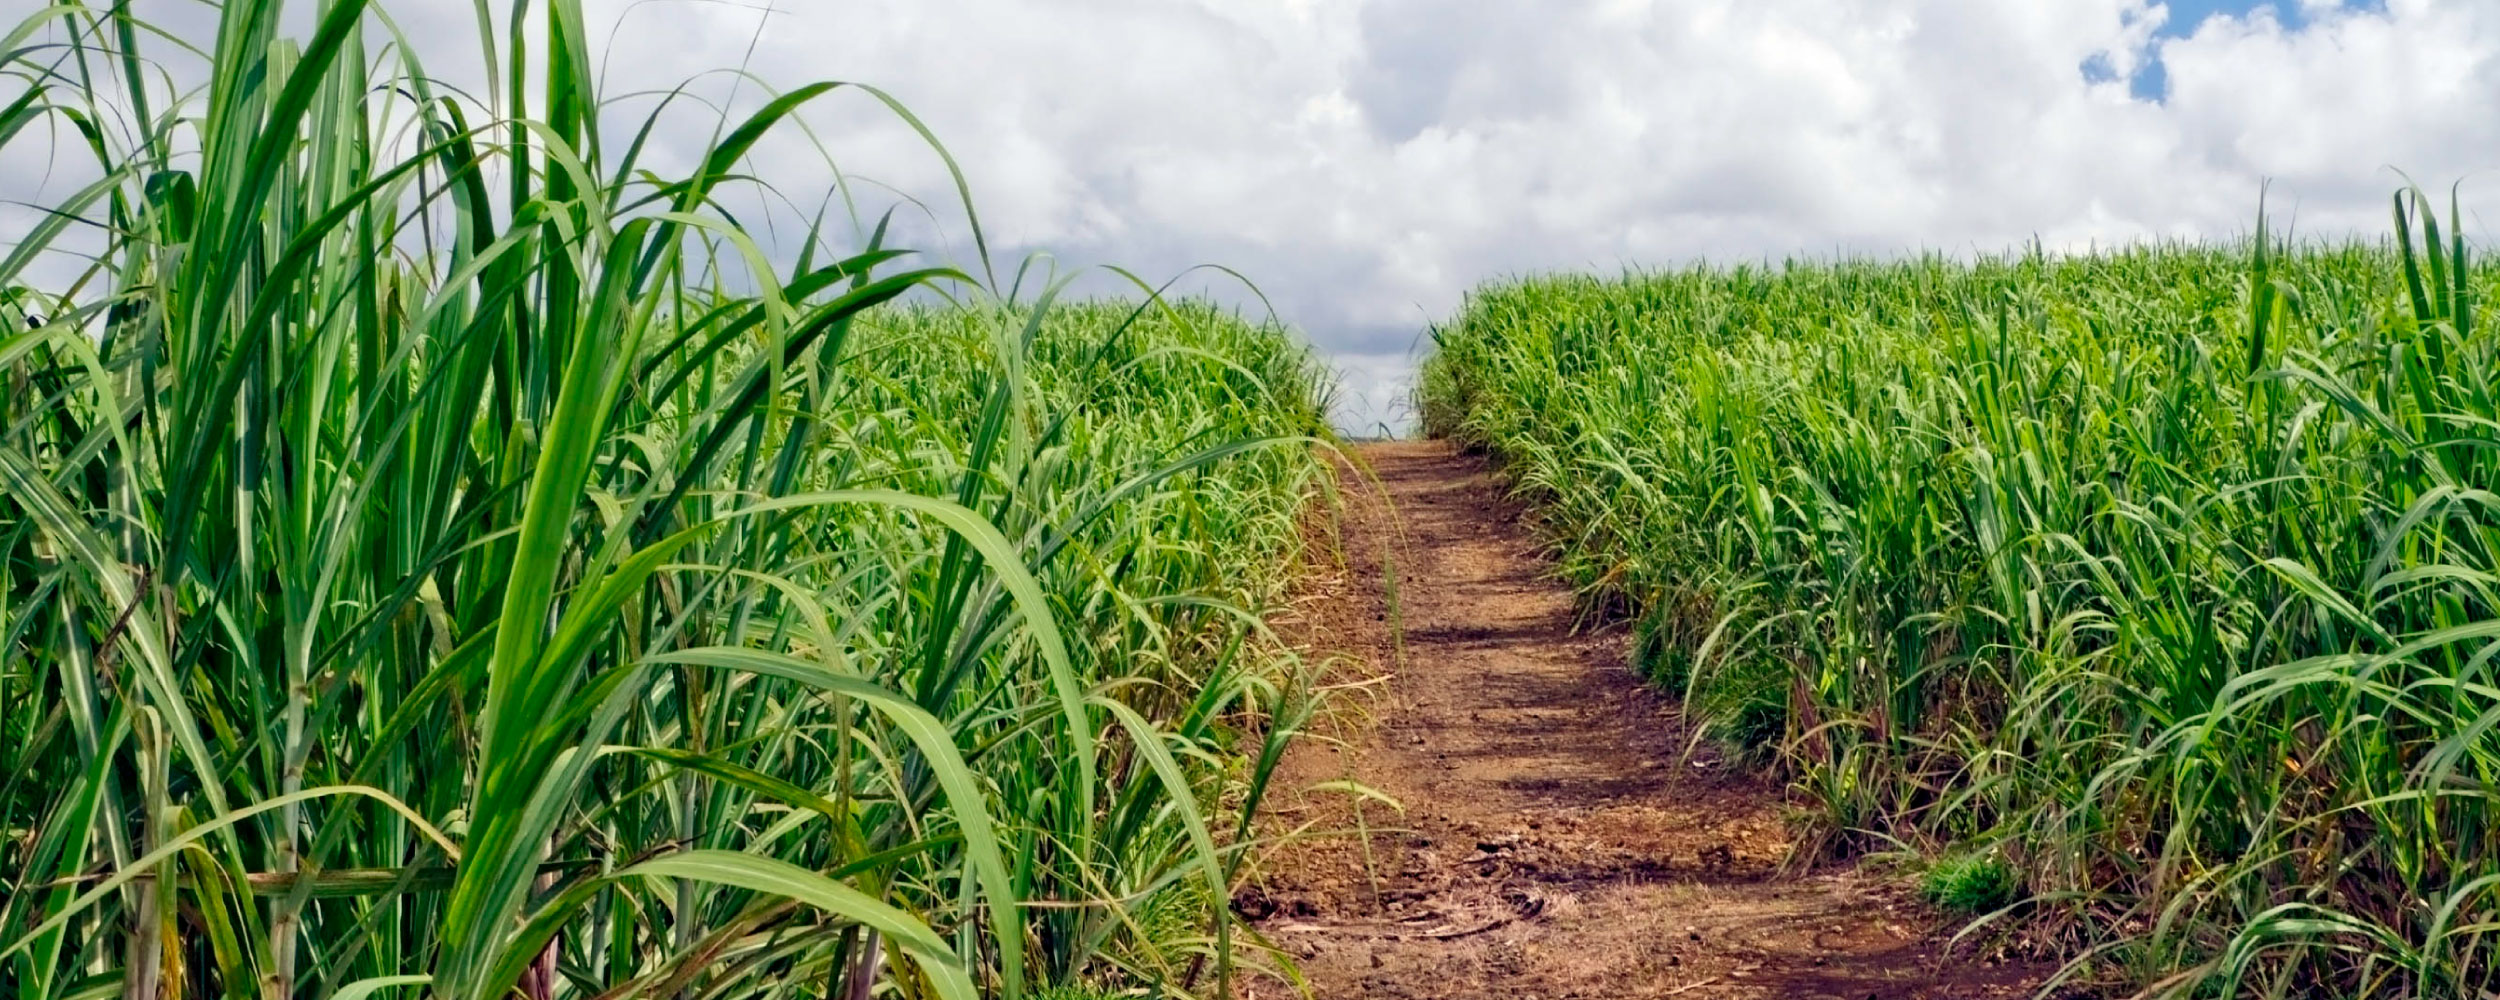 Photo of a sugarcane field in Florida